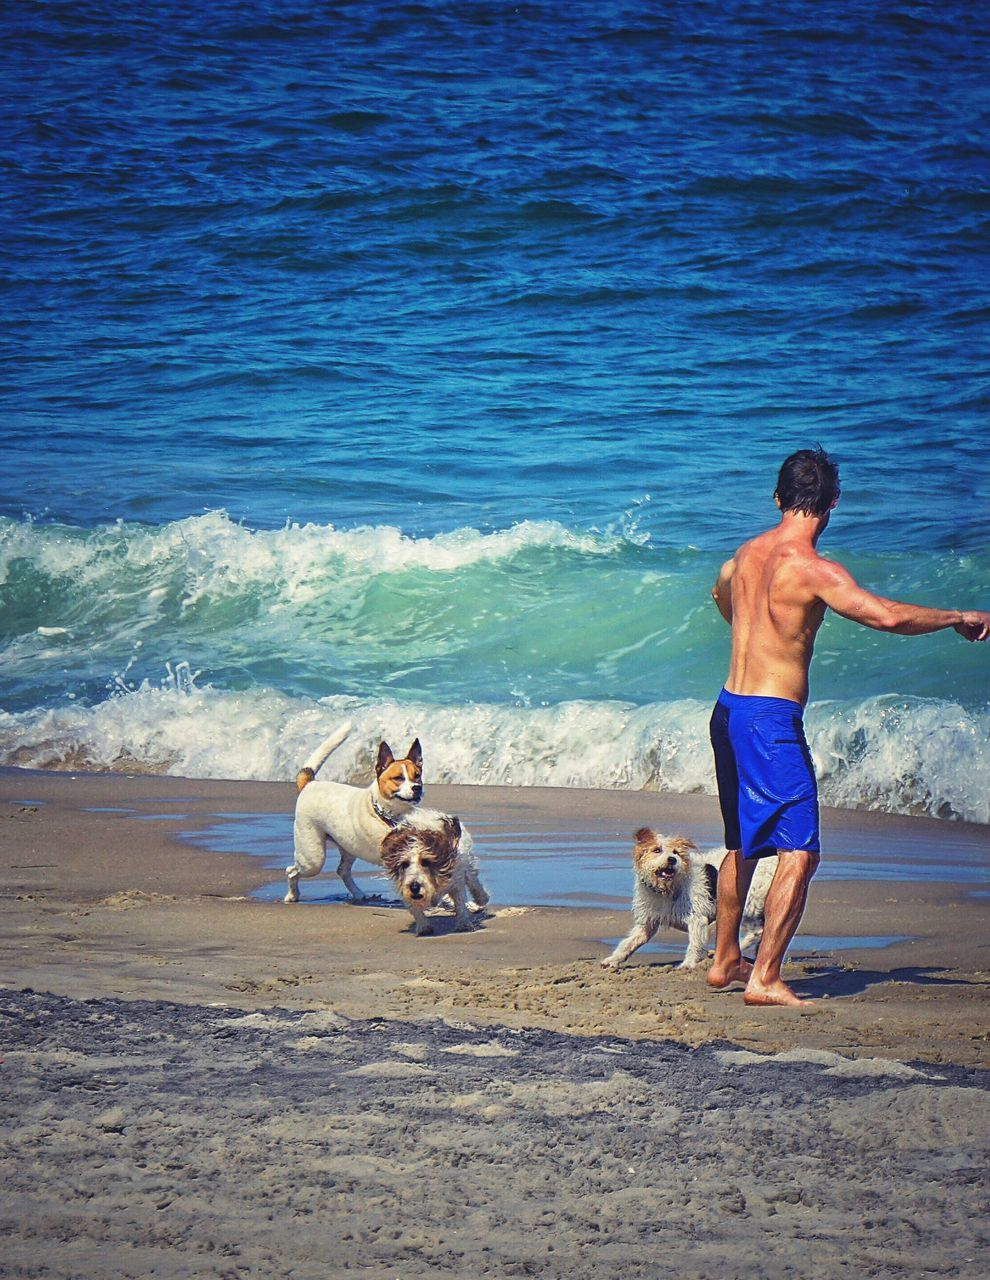 Man And Dogs Standing On Beach Against Sea